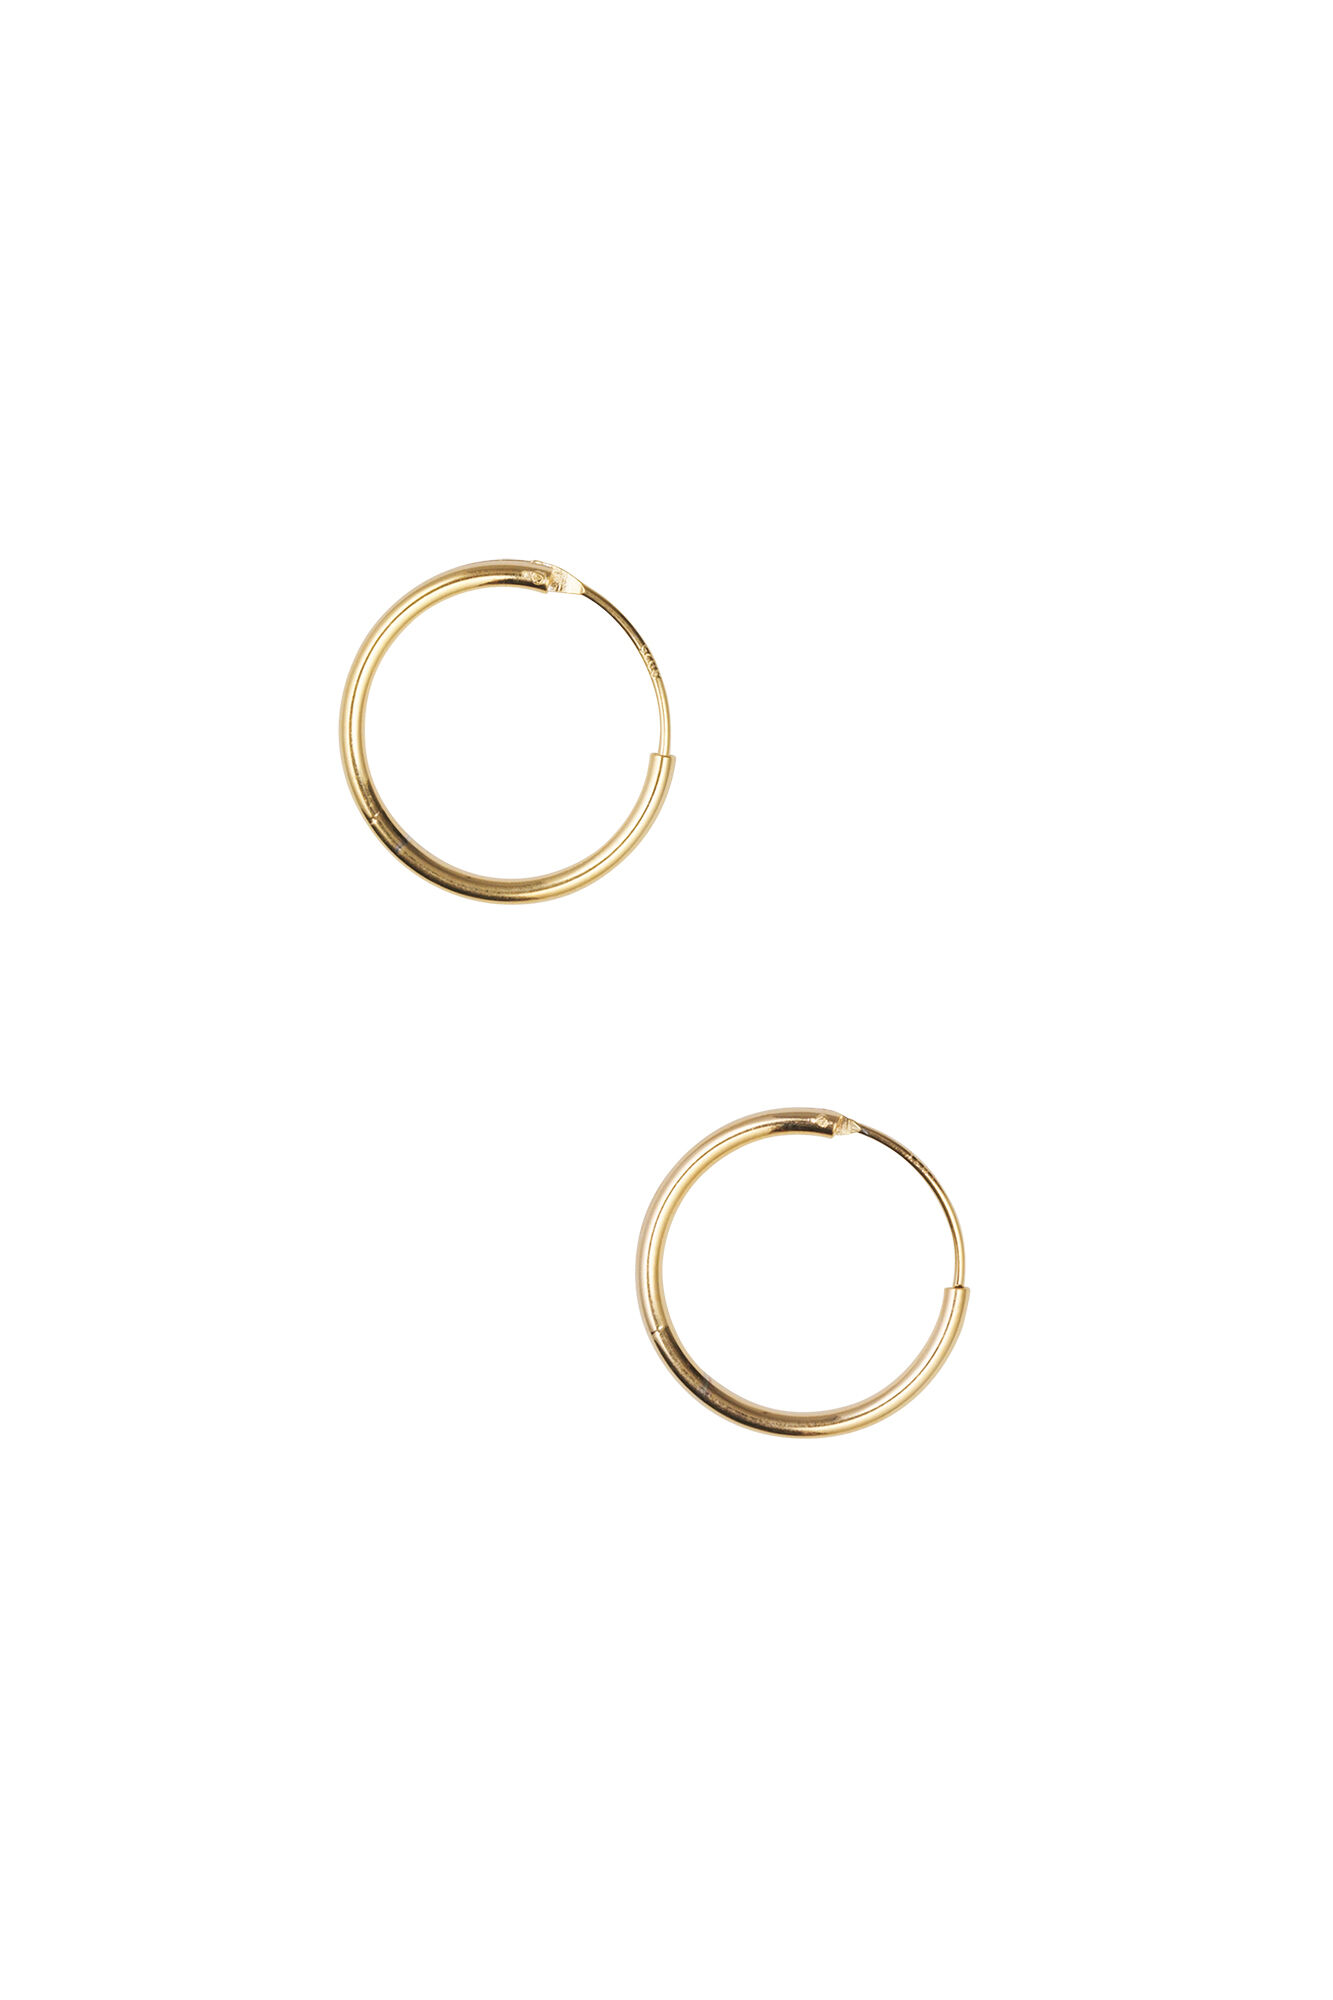 ENCHANDLER EARRING